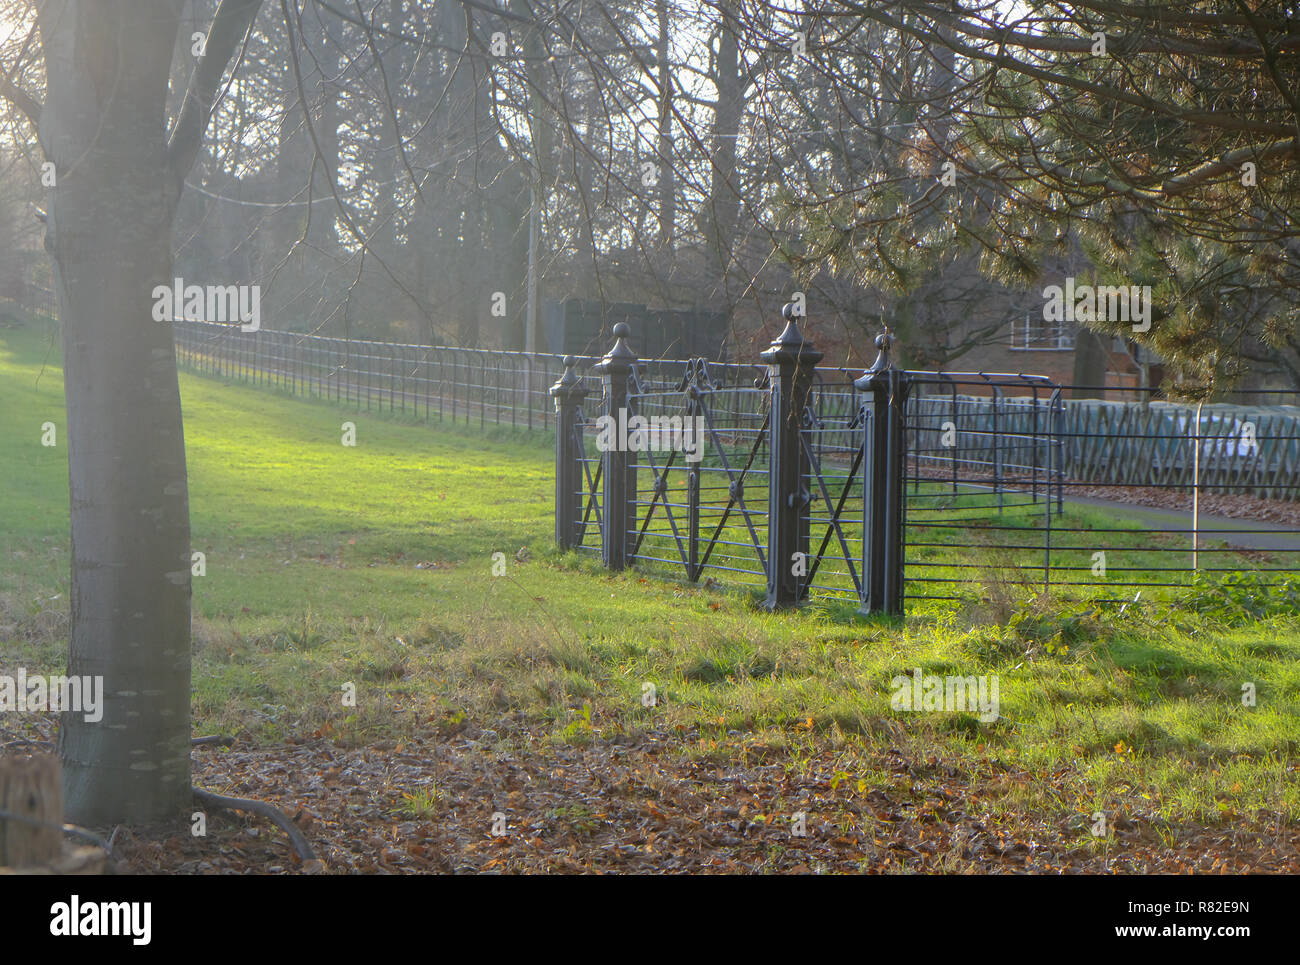 Gates In A Field Stock Photos & Gates In A Field Stock